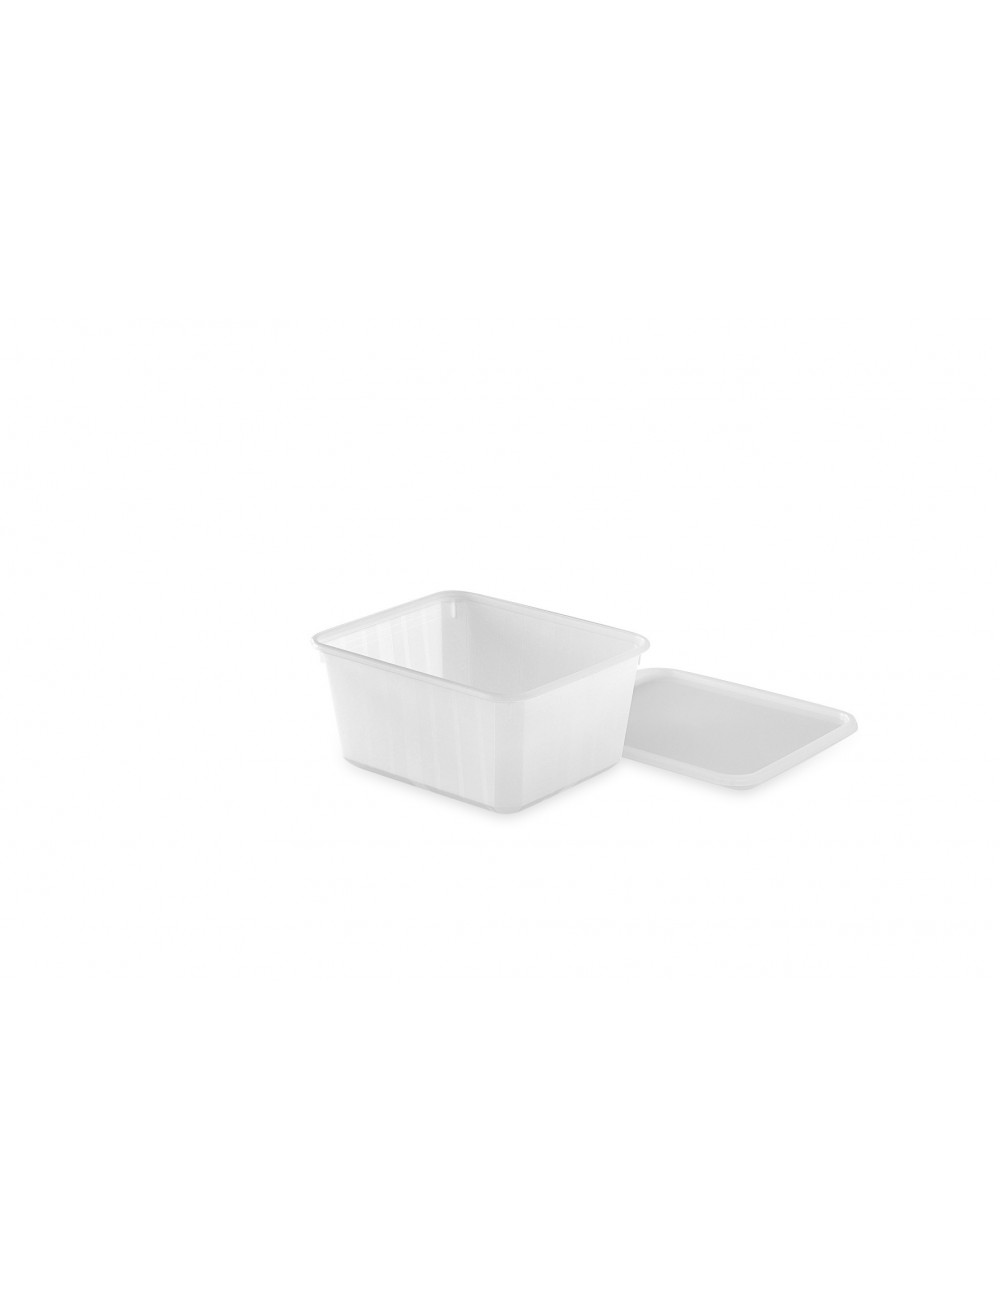 CARTY BOX - PLASTIC CONTAINER - 750 mL